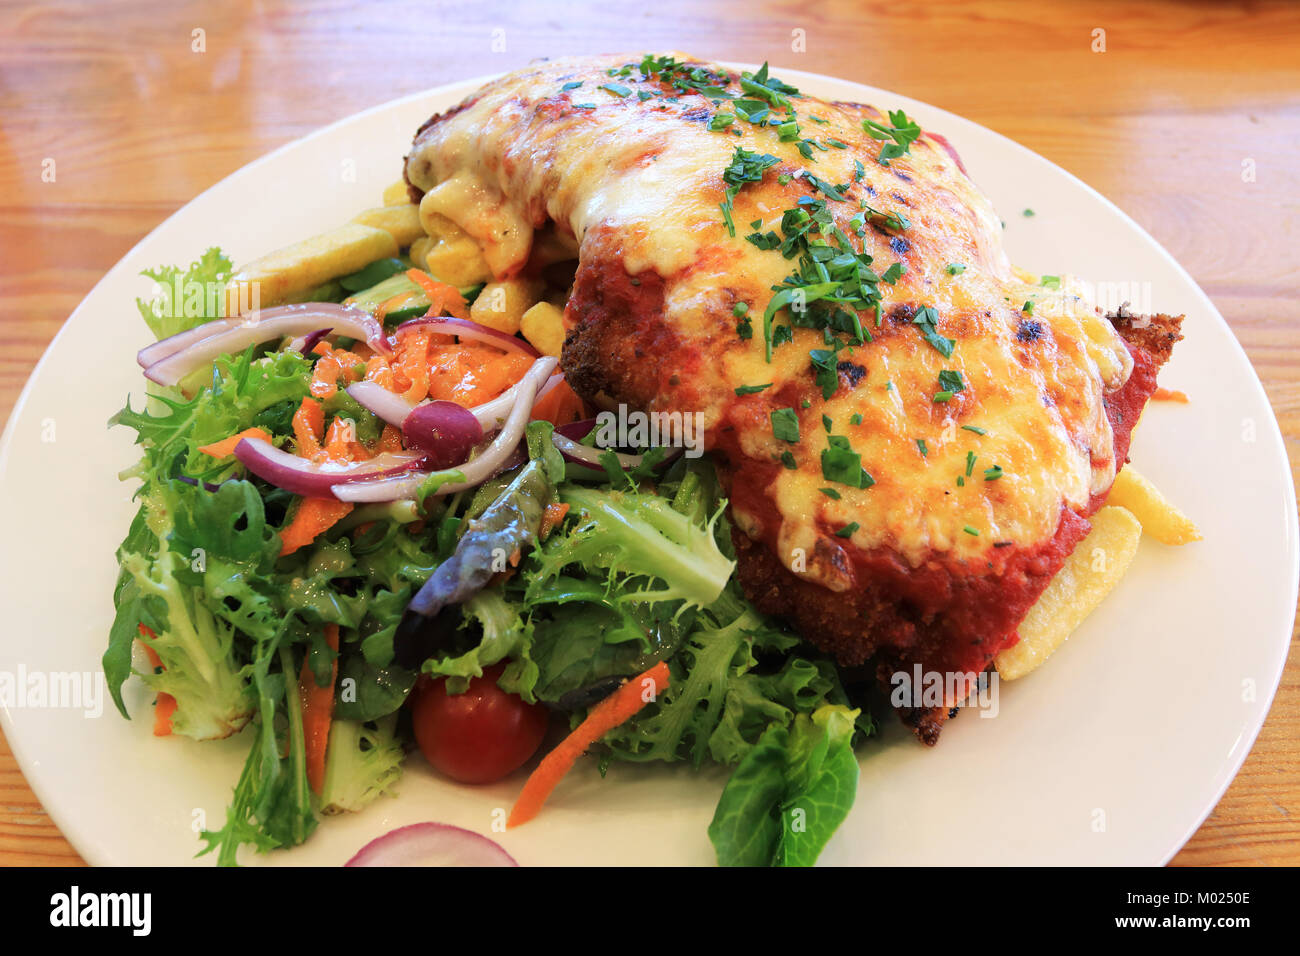 Chicken Schnitzel With Chips And Fresh Garden Salad On Timber Stock Photo Alamy